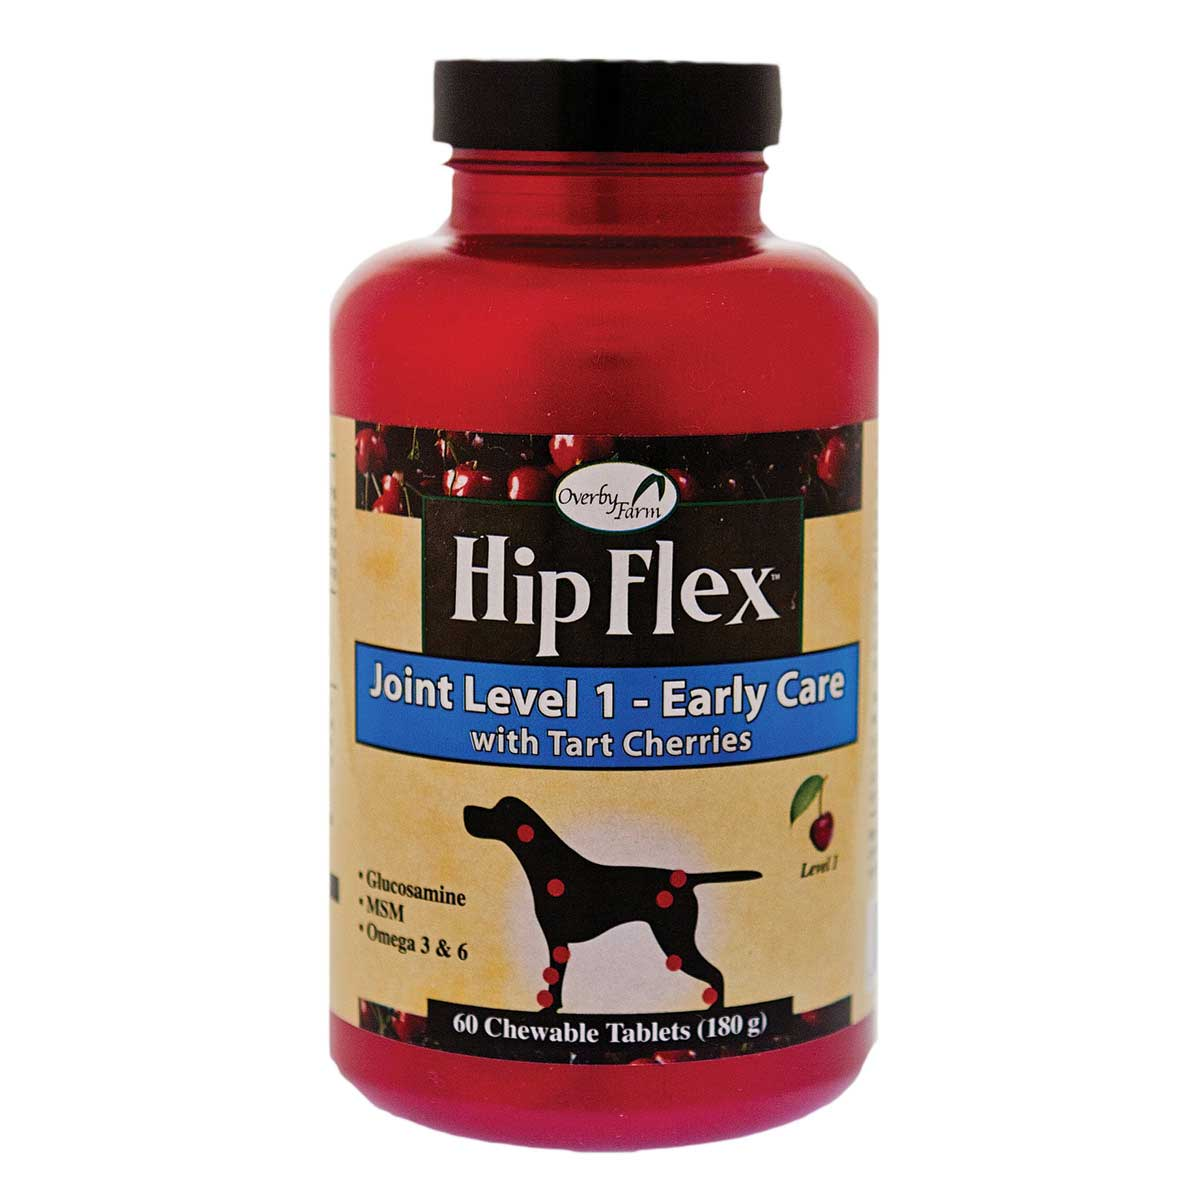 Overby Farm Hip Flex Joint Level One Early Care - 60 Count, 180 g